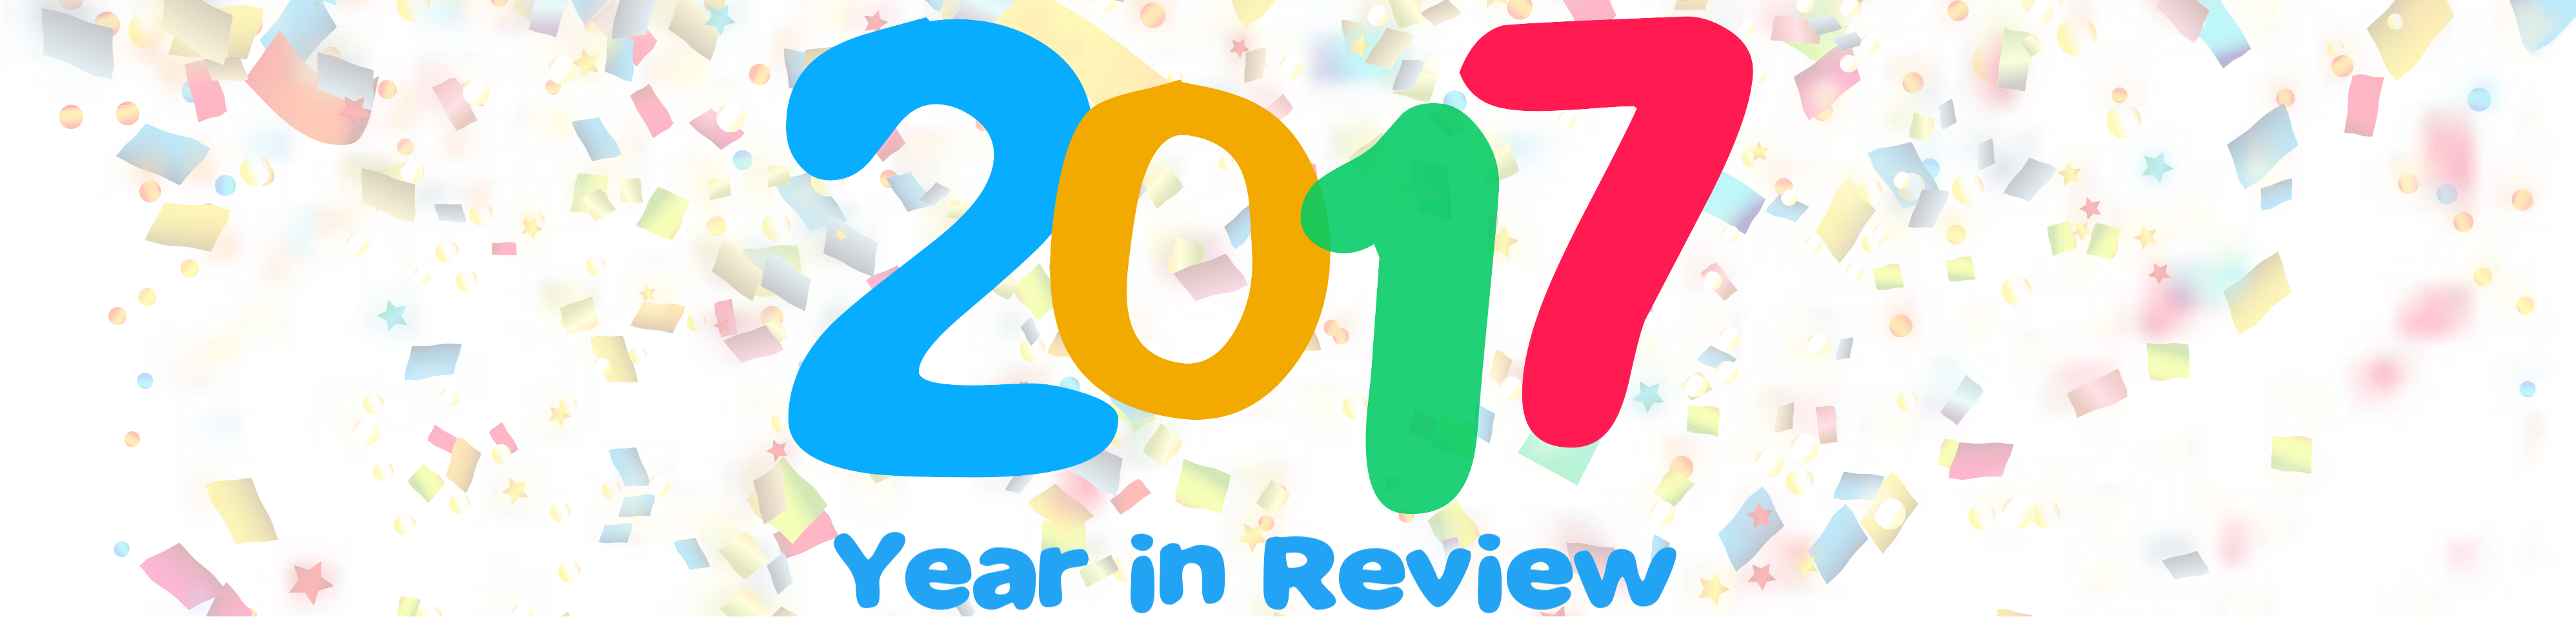 2017 year in review header